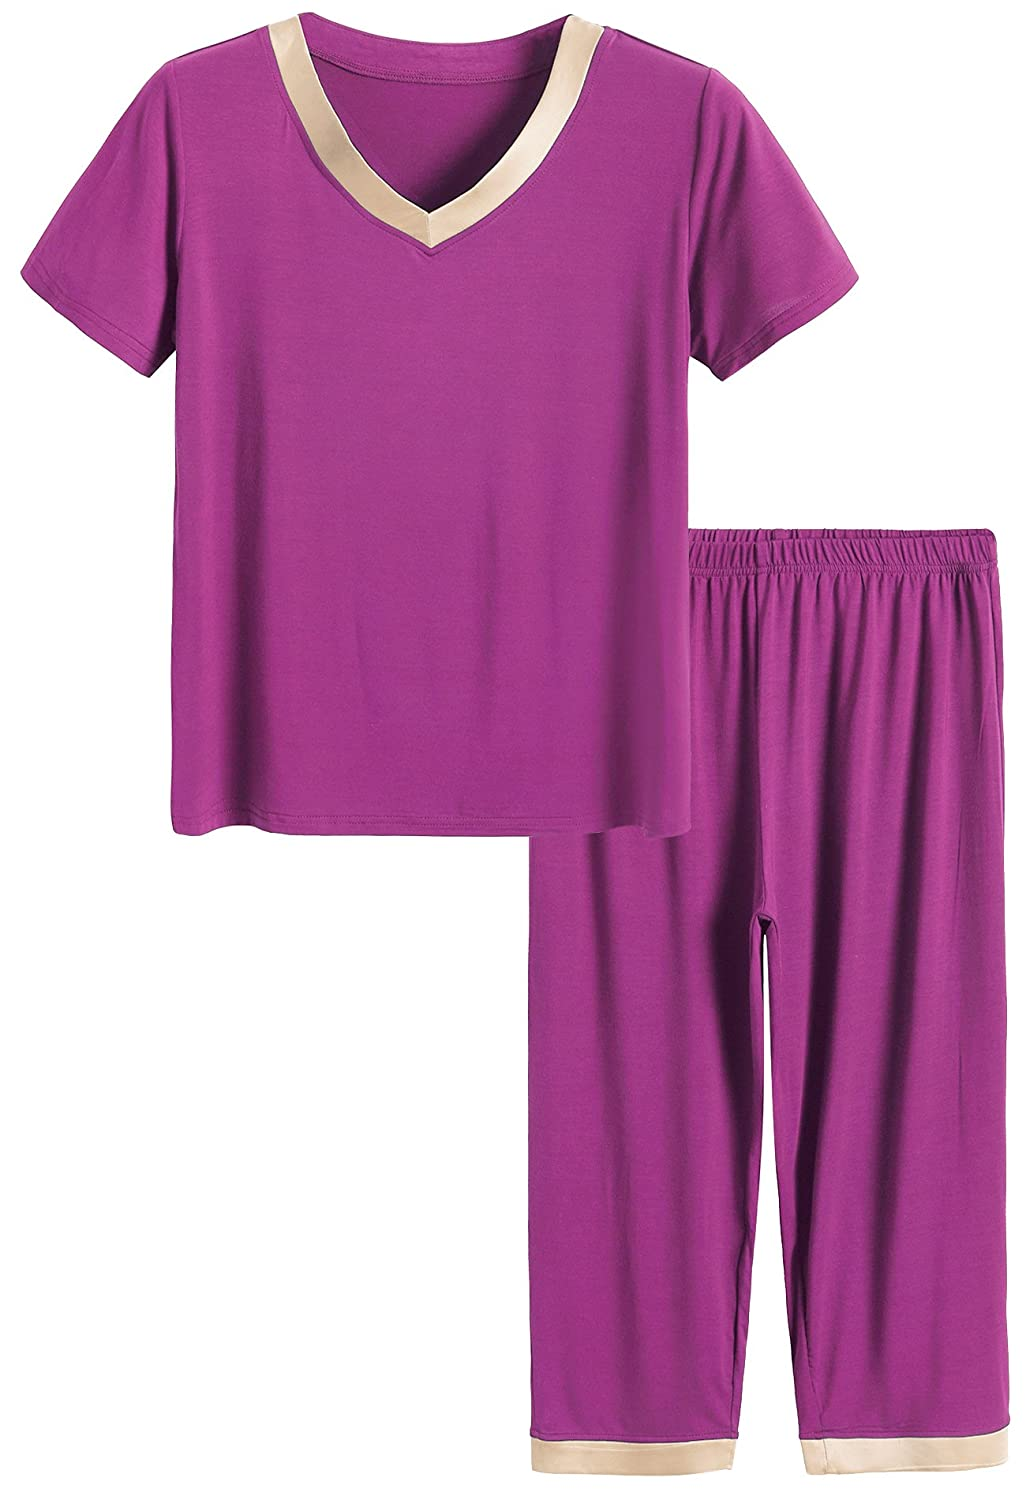 54b7eb6eee3 Latuza Women s Sleepwear Tops with Capri Pants Pajama Sets at Amazon ...